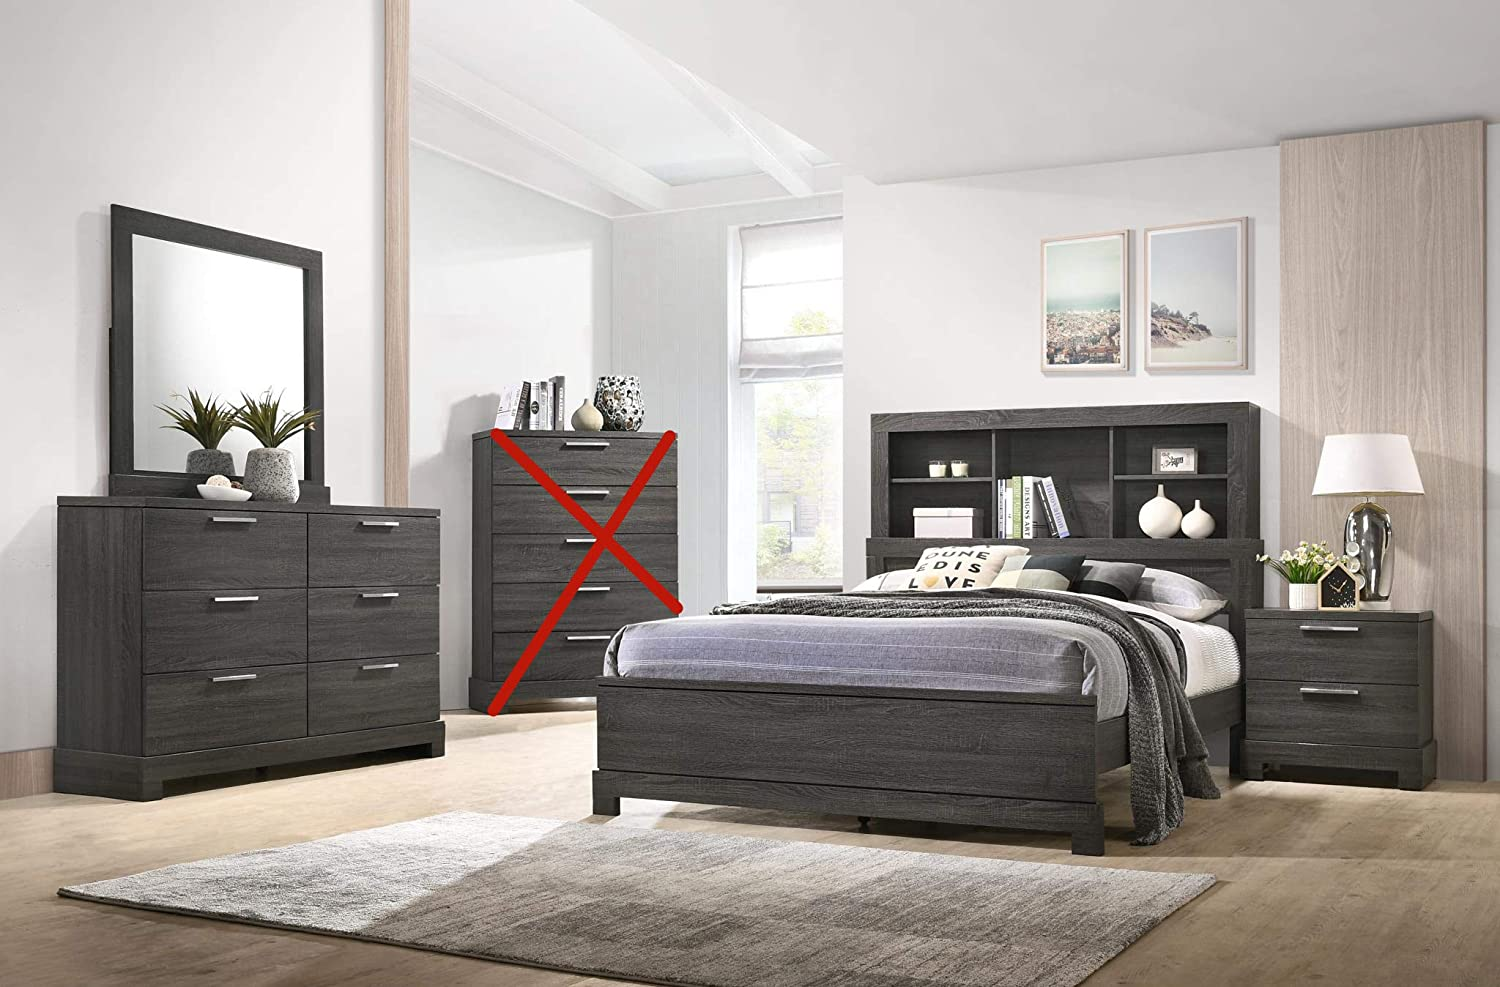 Amazon.com: GTU Furniture Contemporary Bookcase headboard Bedroom ...